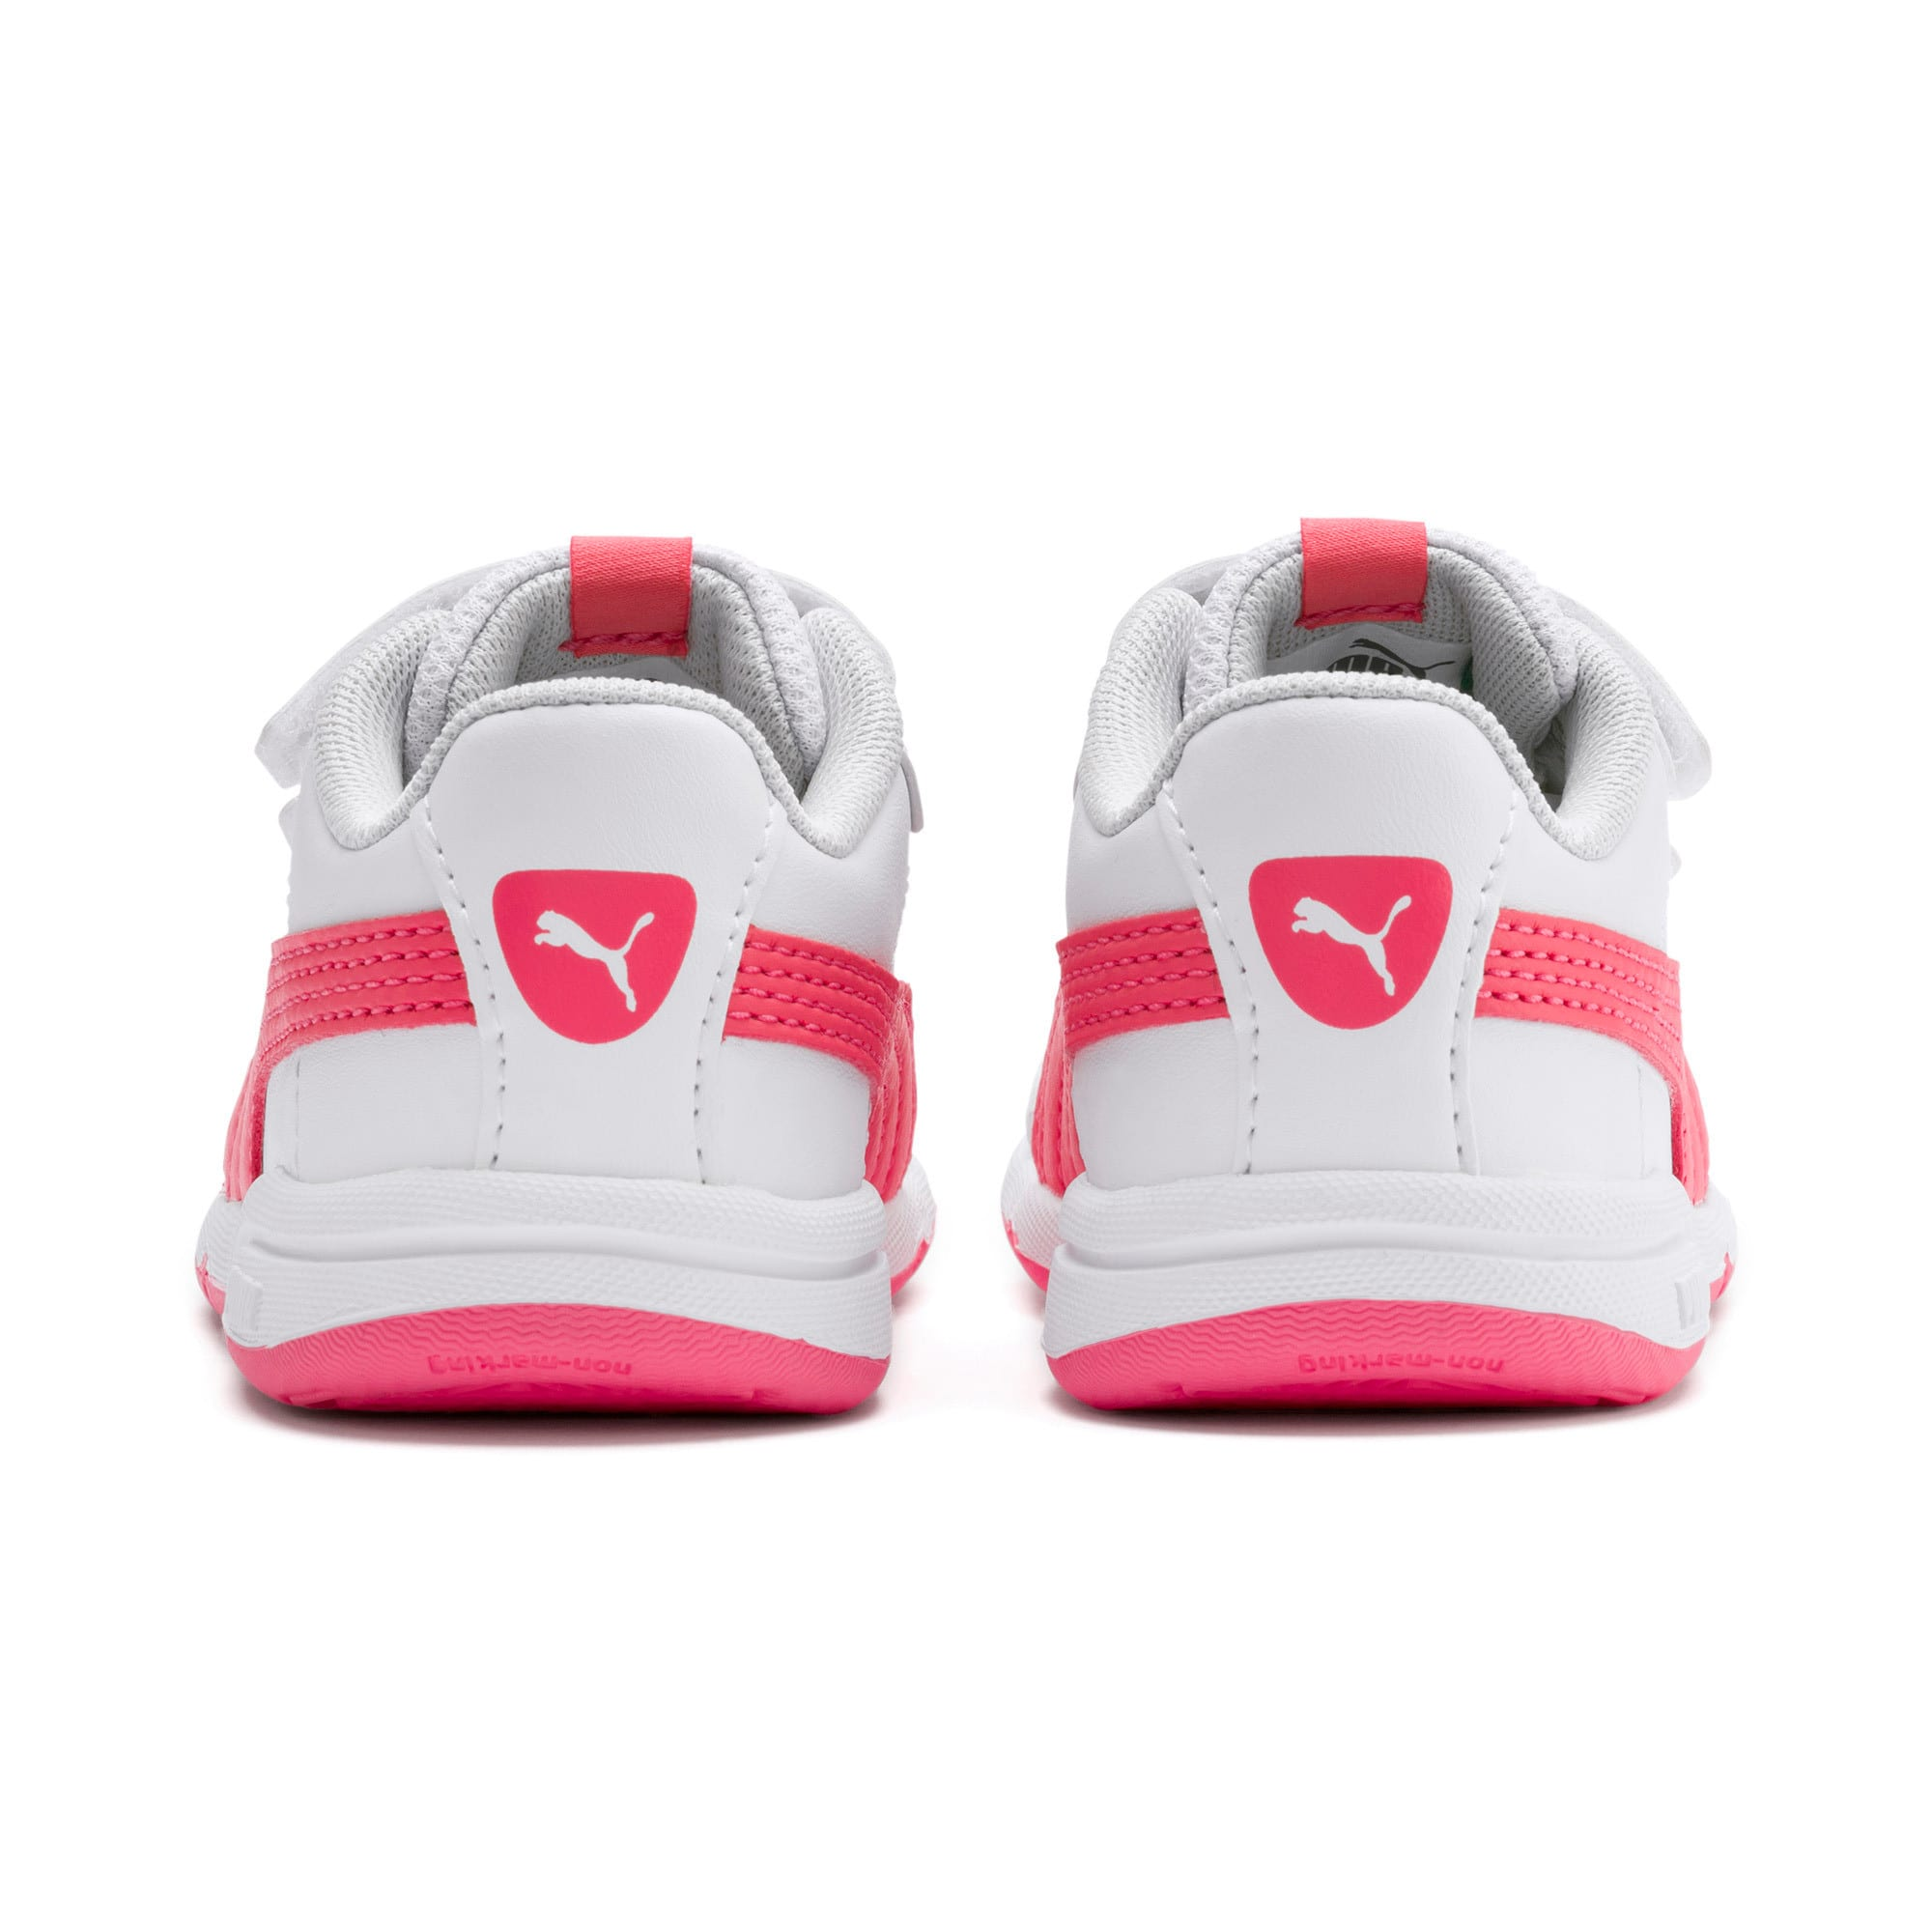 Thumbnail 3 of Stepfleex 2 SL VE V Babies Sneaker, White-Calypso Coral-G Gray, medium